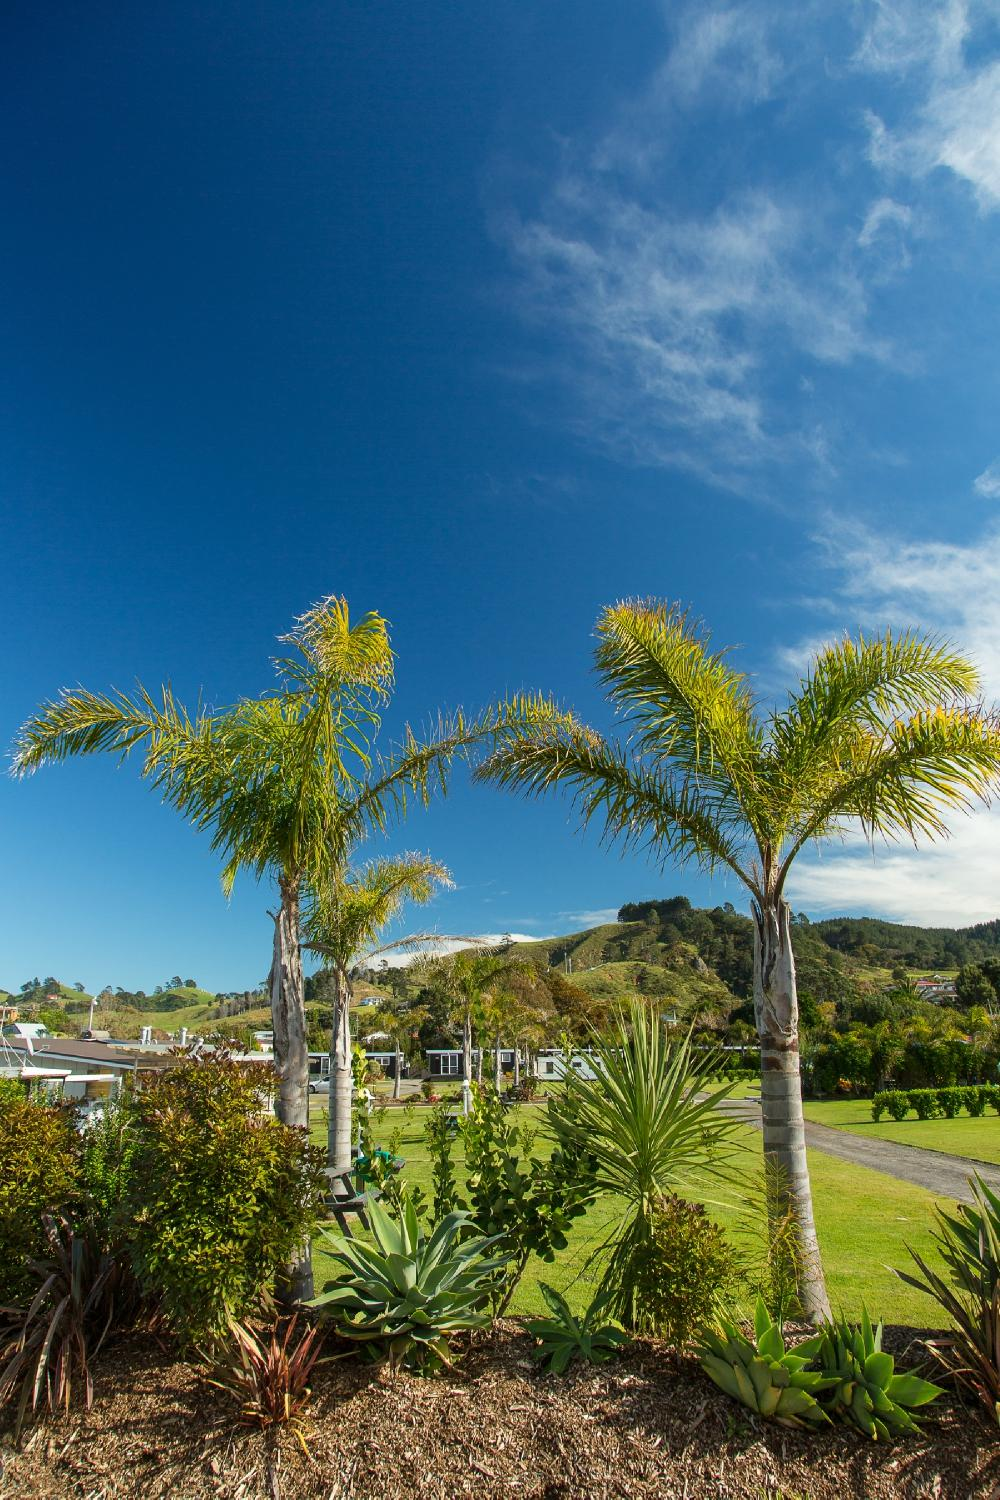 Waihi New Zealand  city pictures gallery : Beachaven Kiwi Holiday Park Waihi, New Zealand UPDATED 2016 ...